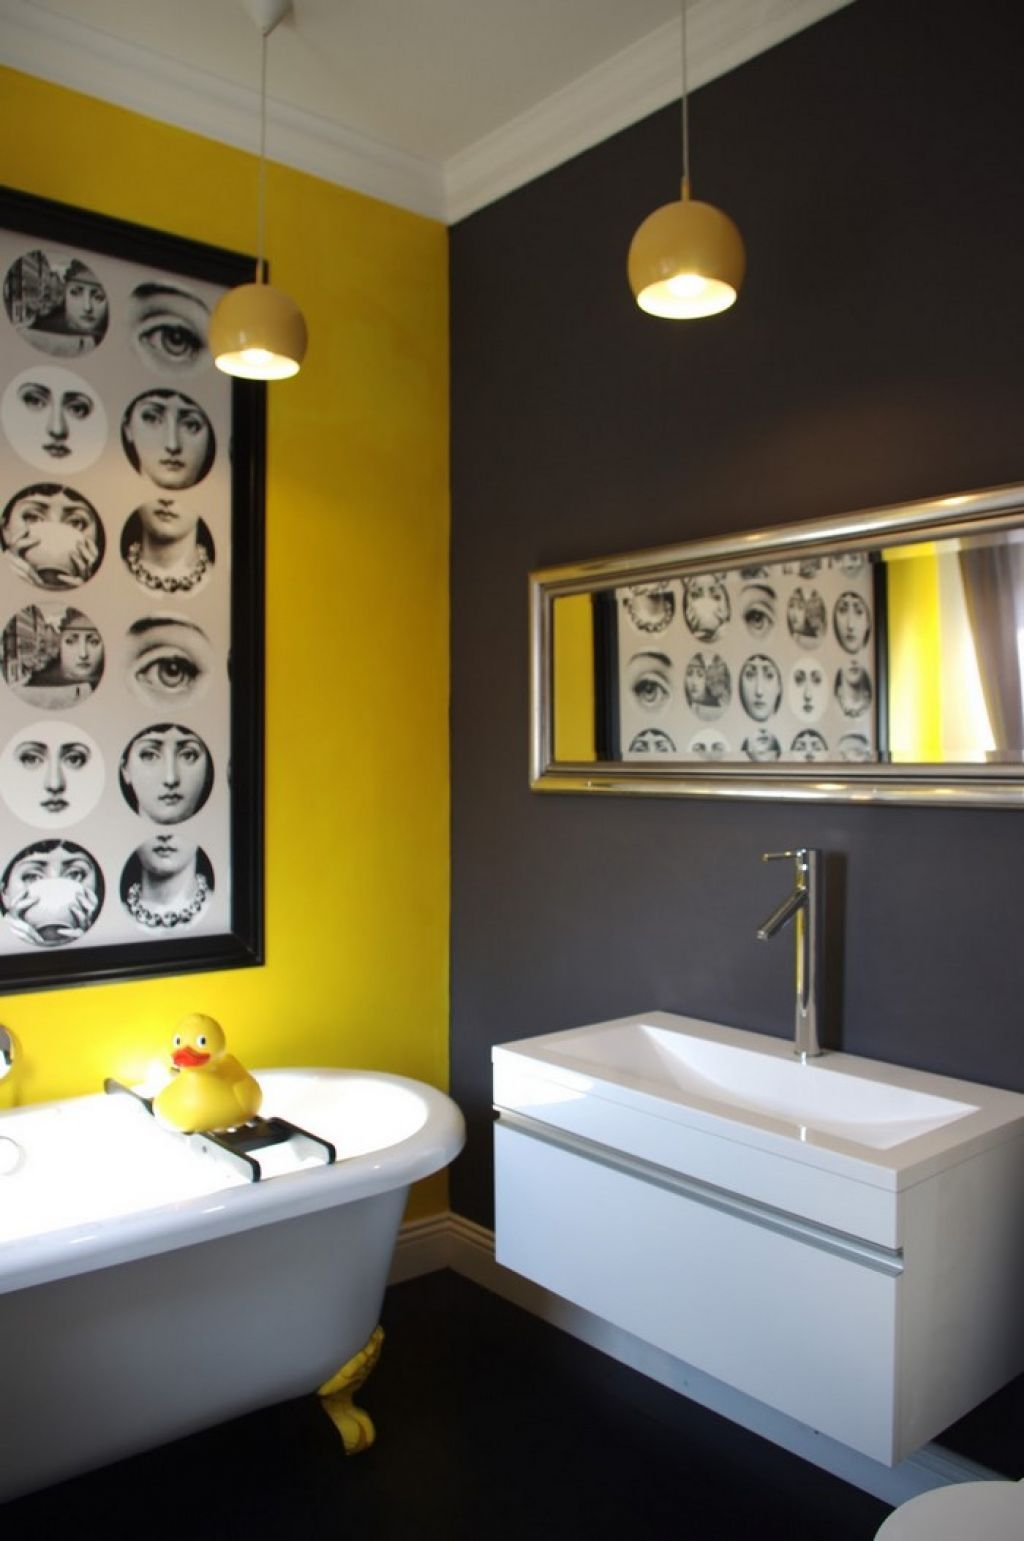 Bathroom With Yellow Grey Wall Colors | Pinterest | Remodeling costs ...